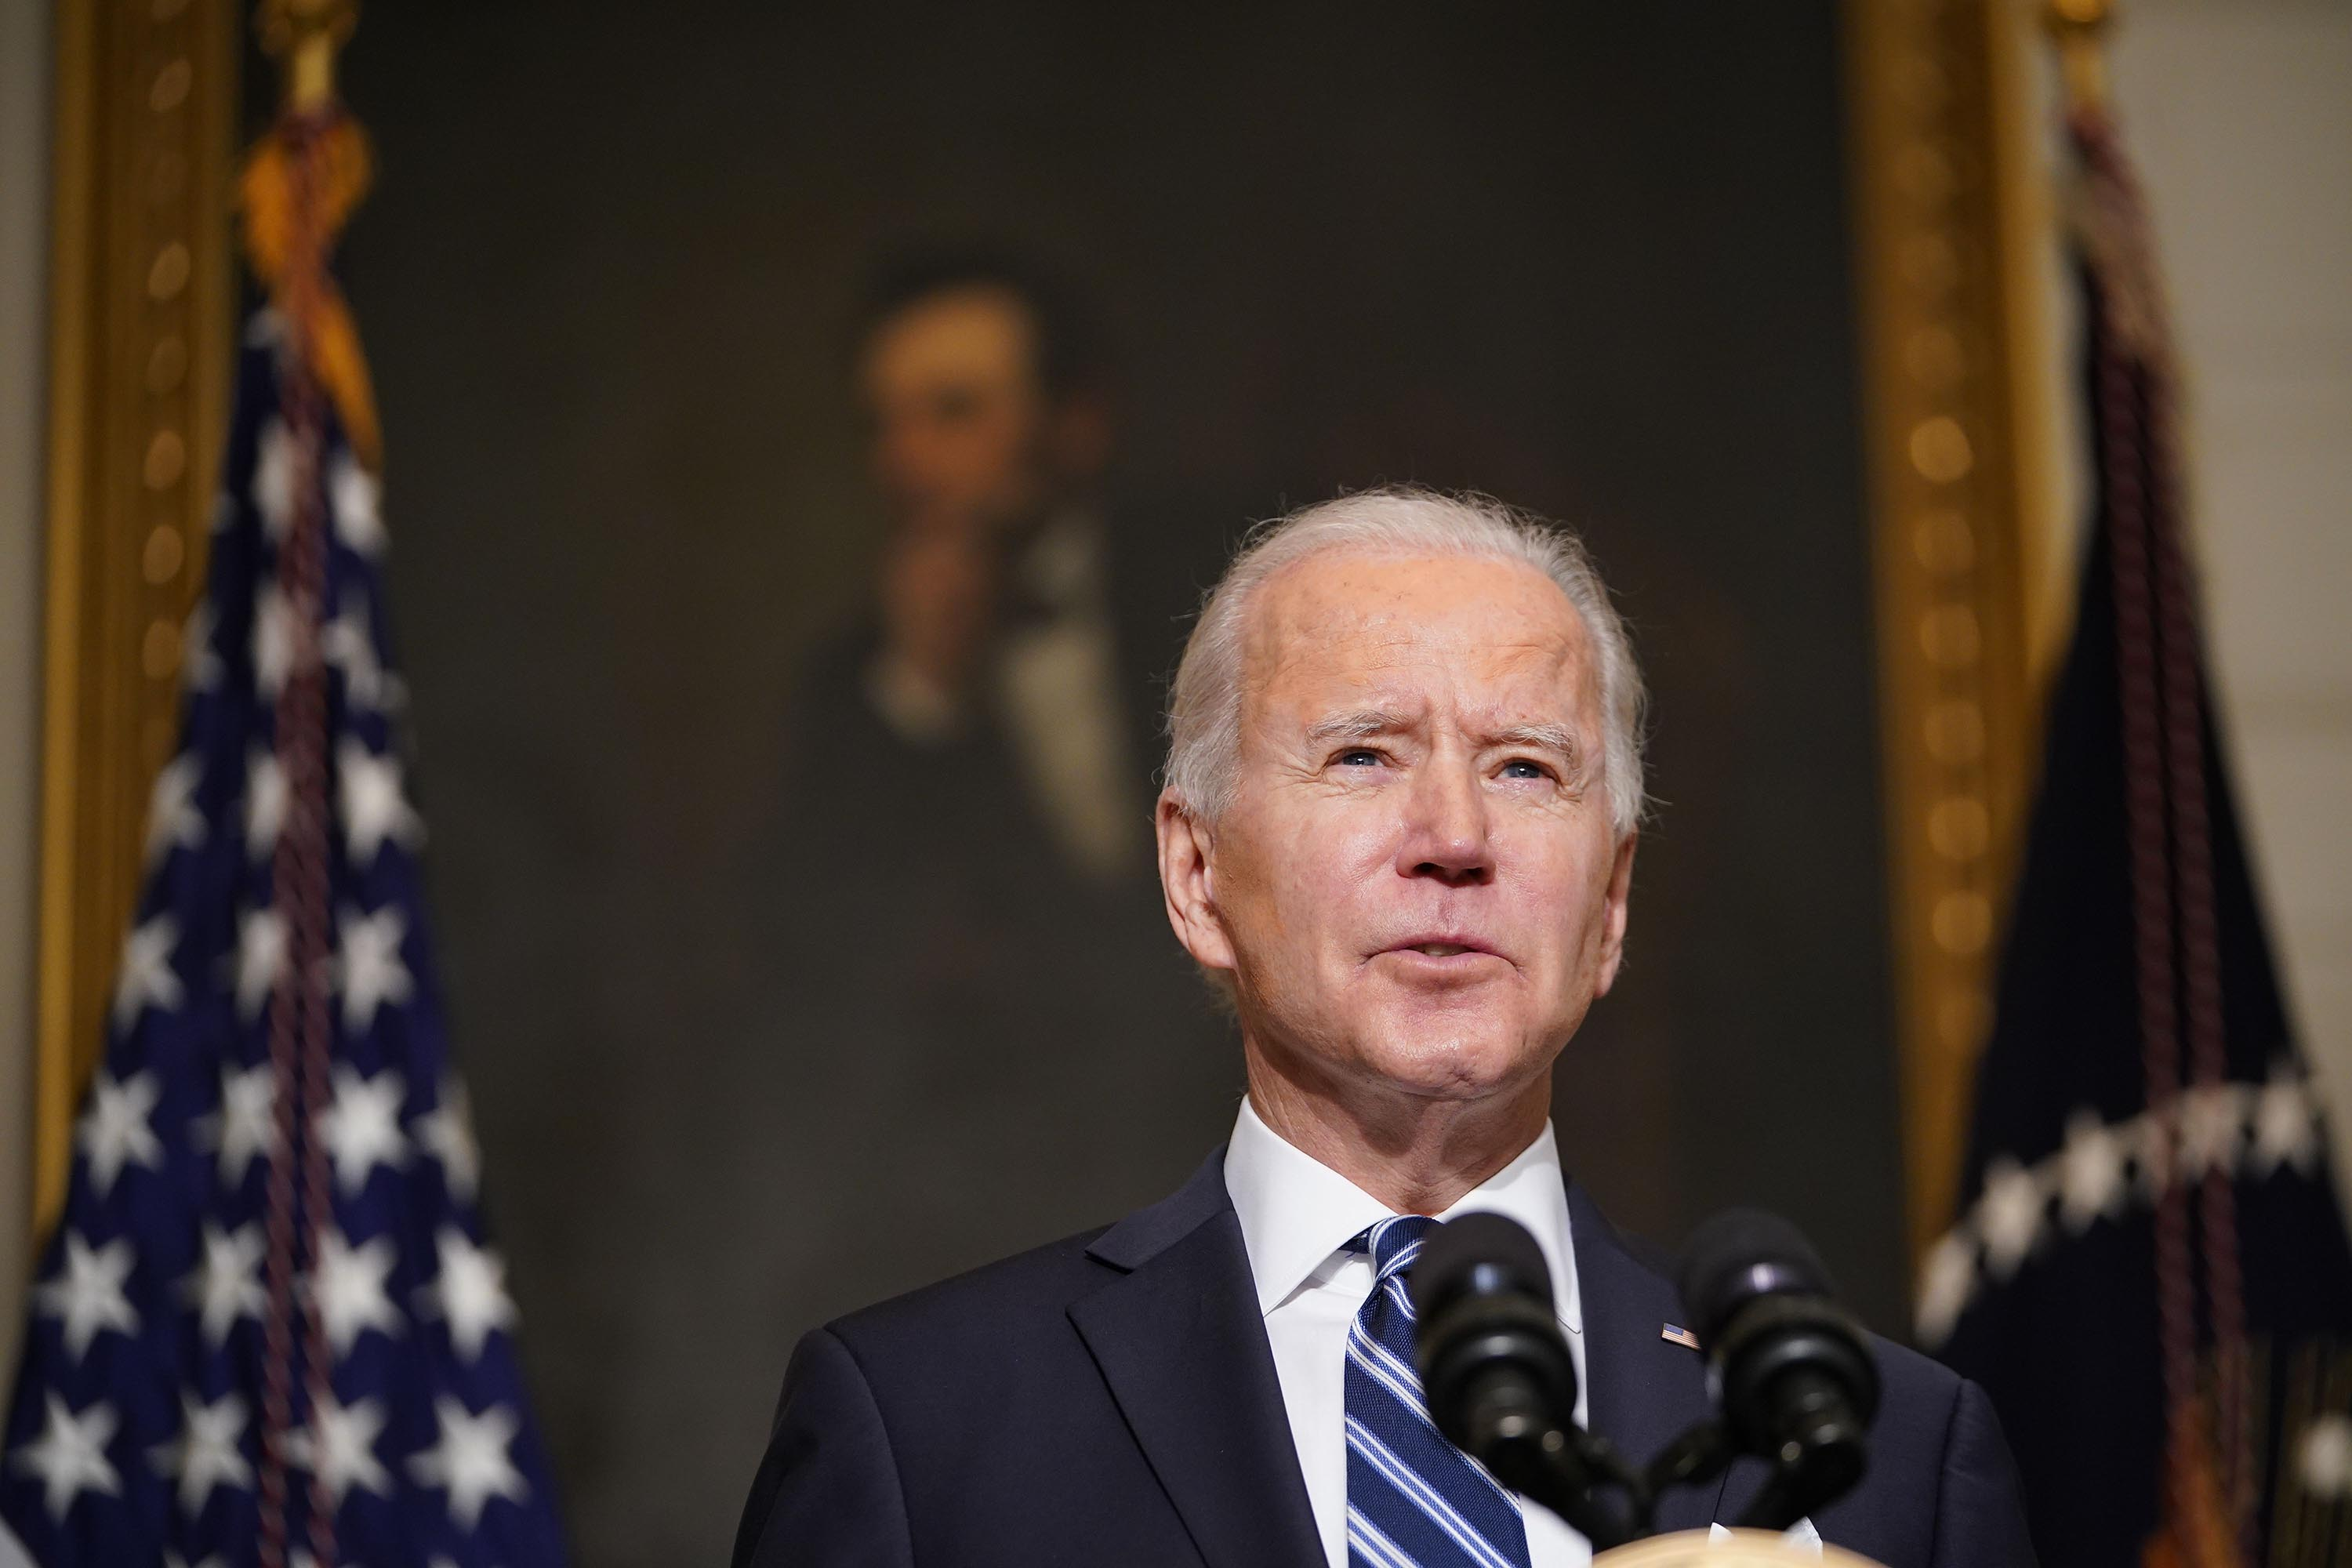 Biden signed two executive orders and a memorandum Wednesday. Here's what they do